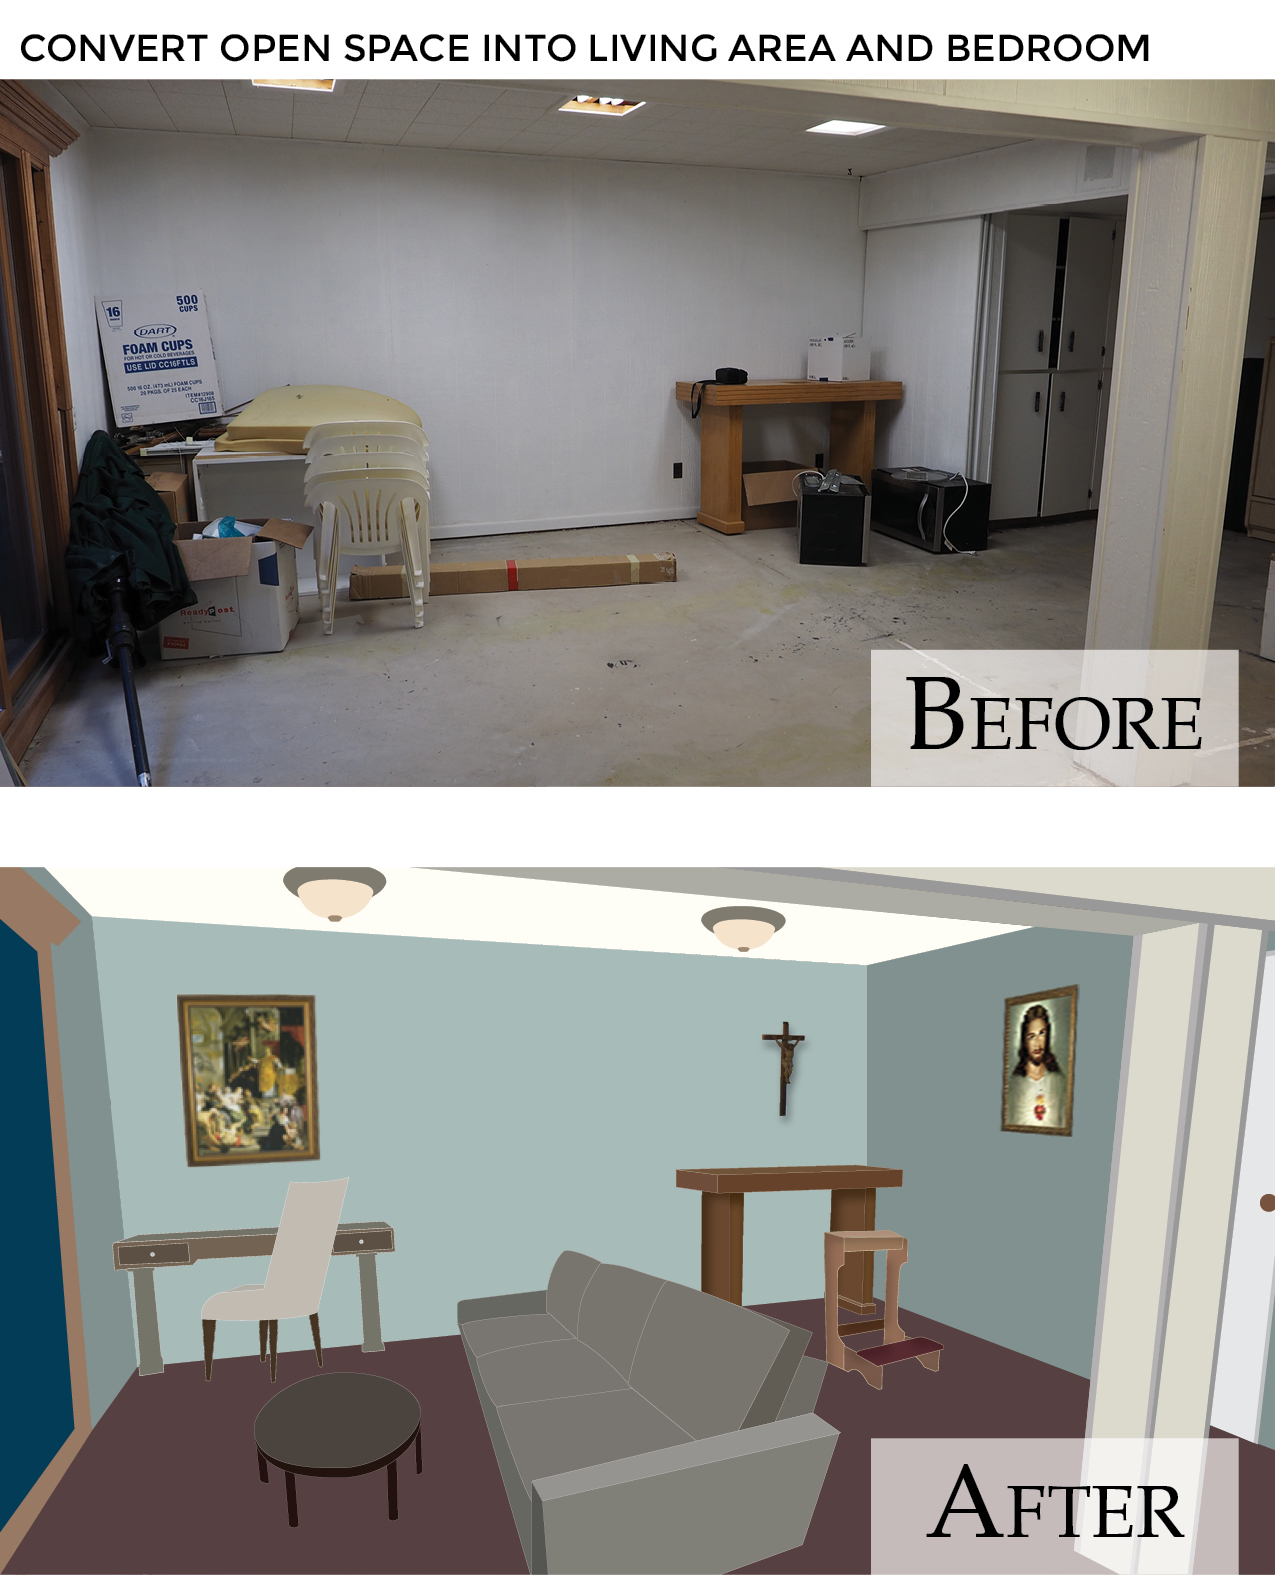 Hermitage Appeal Web - Living area-Bedroom Before & After.jpg